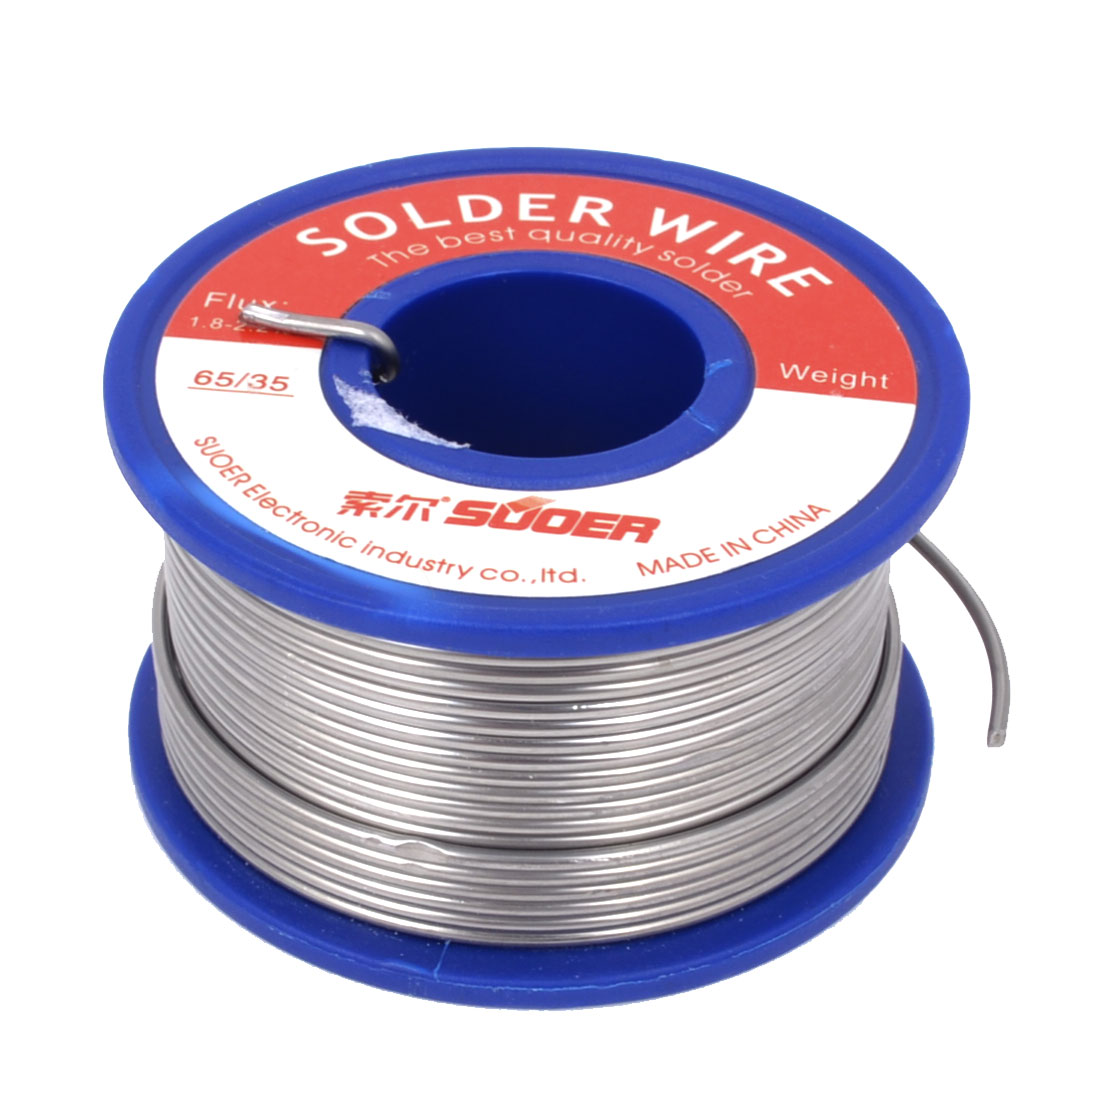 1.8-2.2% Flux 1.2mm Dia Tin Lead Solder Core Wire Soldering Rosin Reel